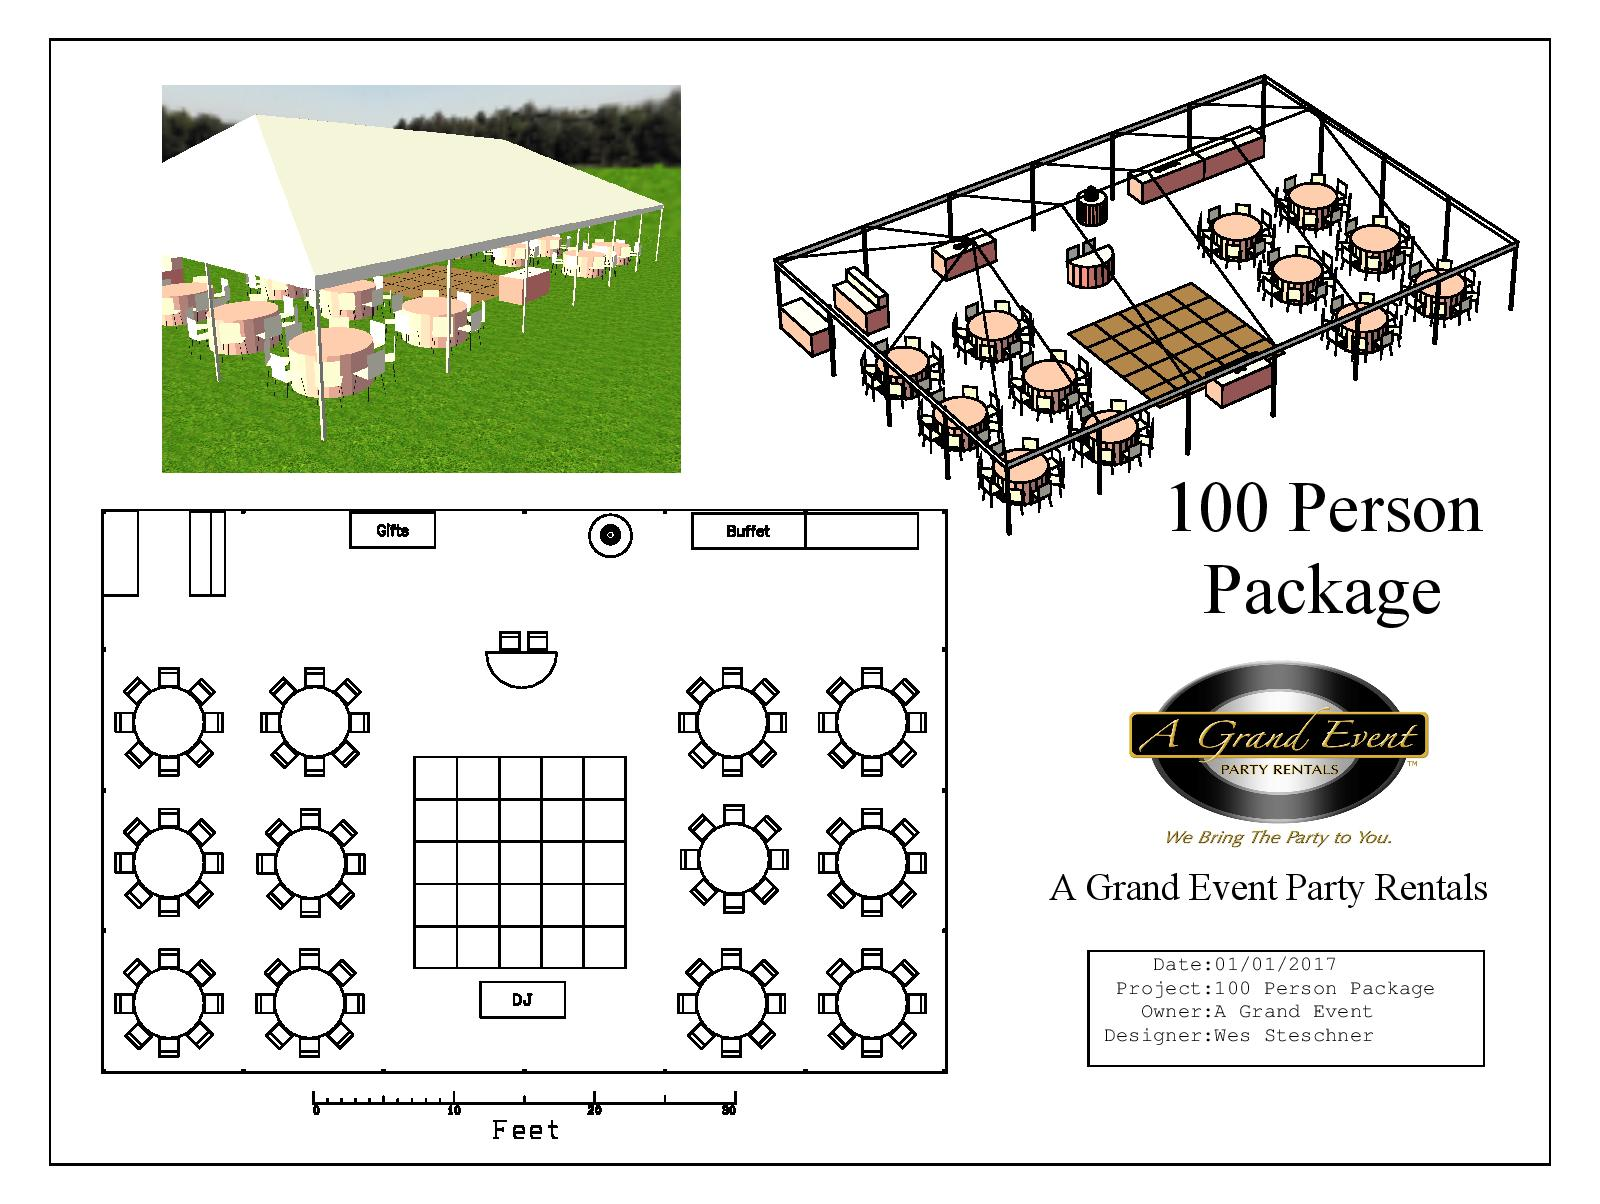 100 Person Package